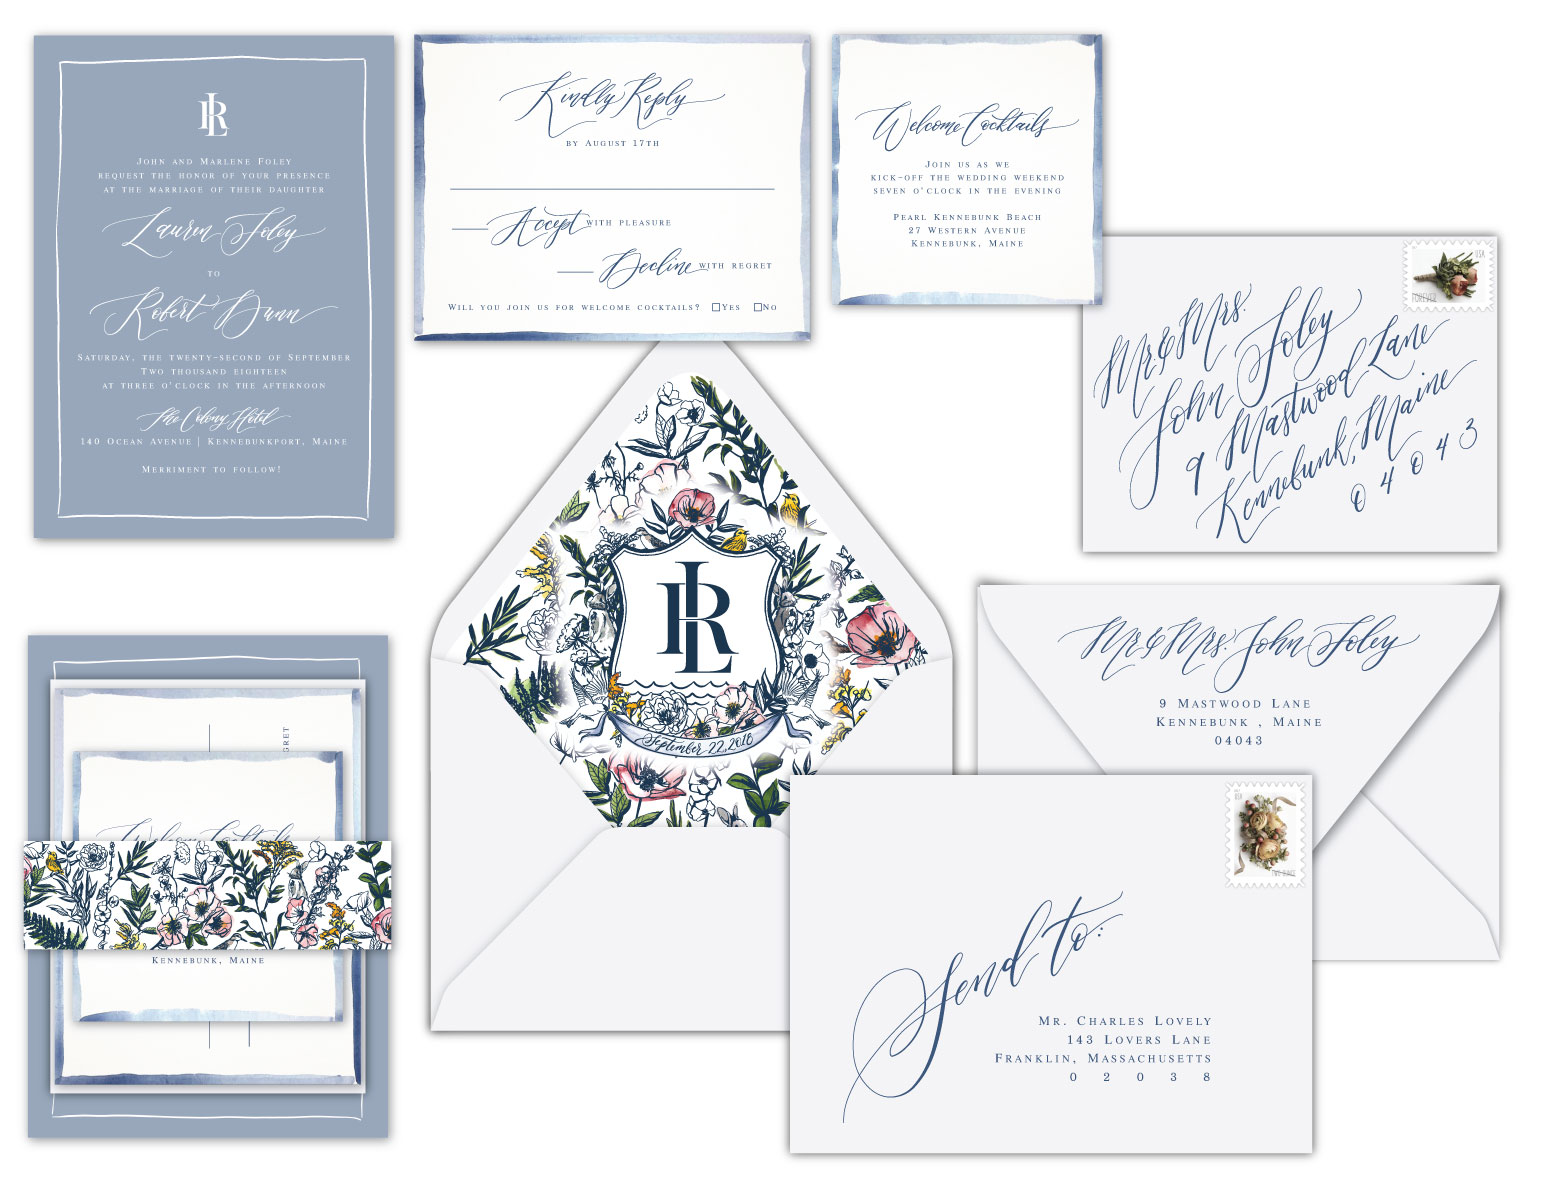 Custom wedding invitation design mockup